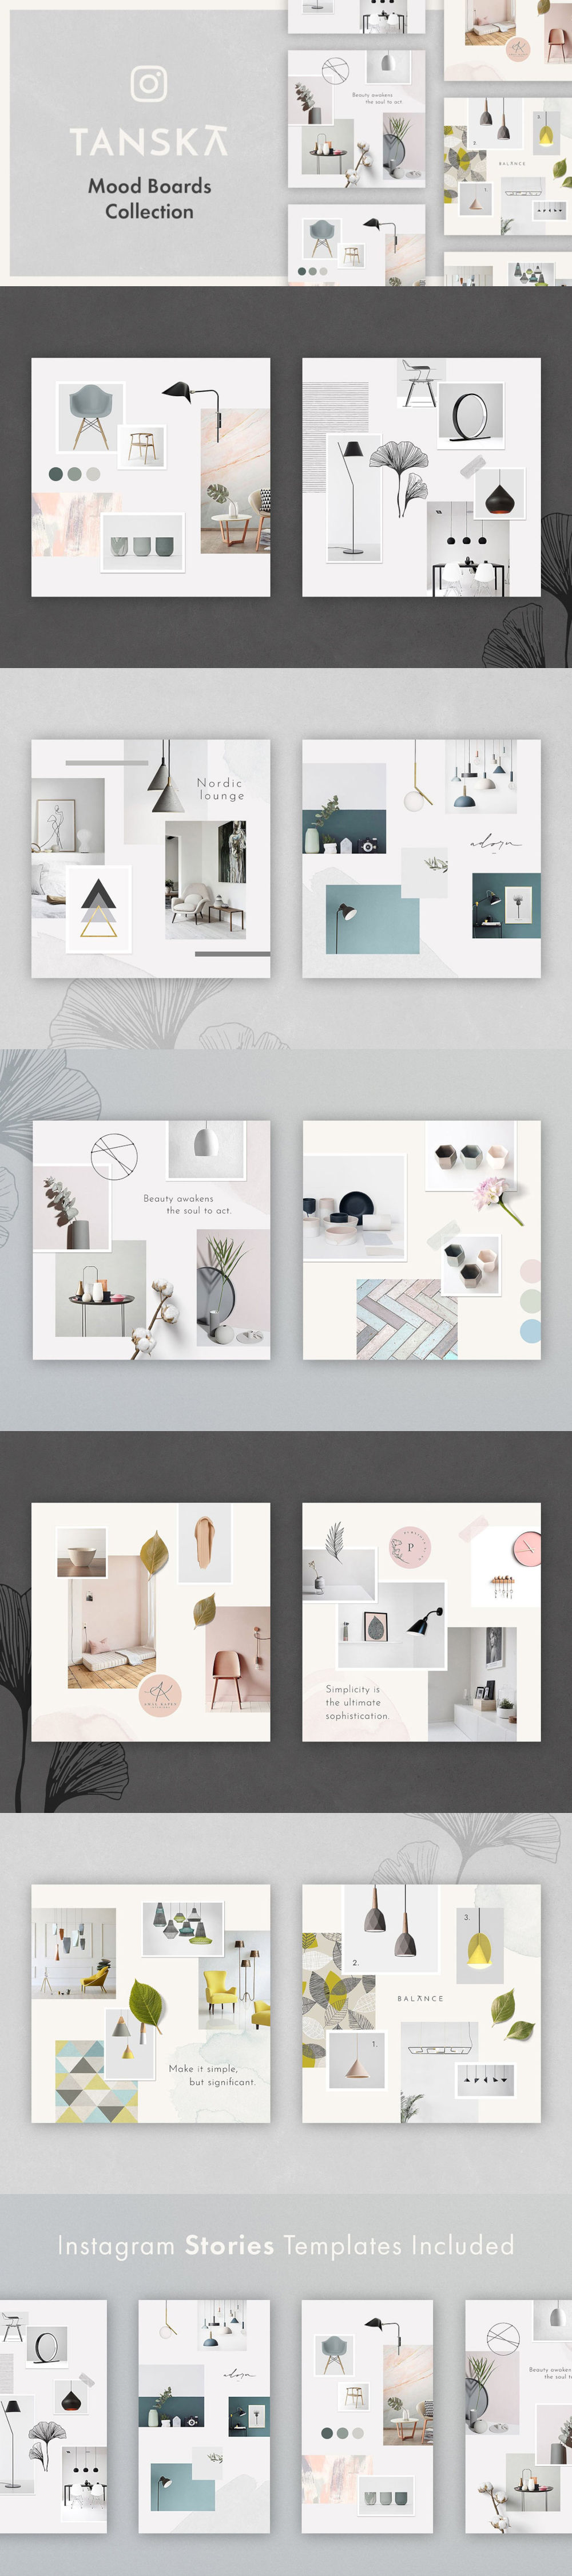 Tanska free instagram moodboard collection preview